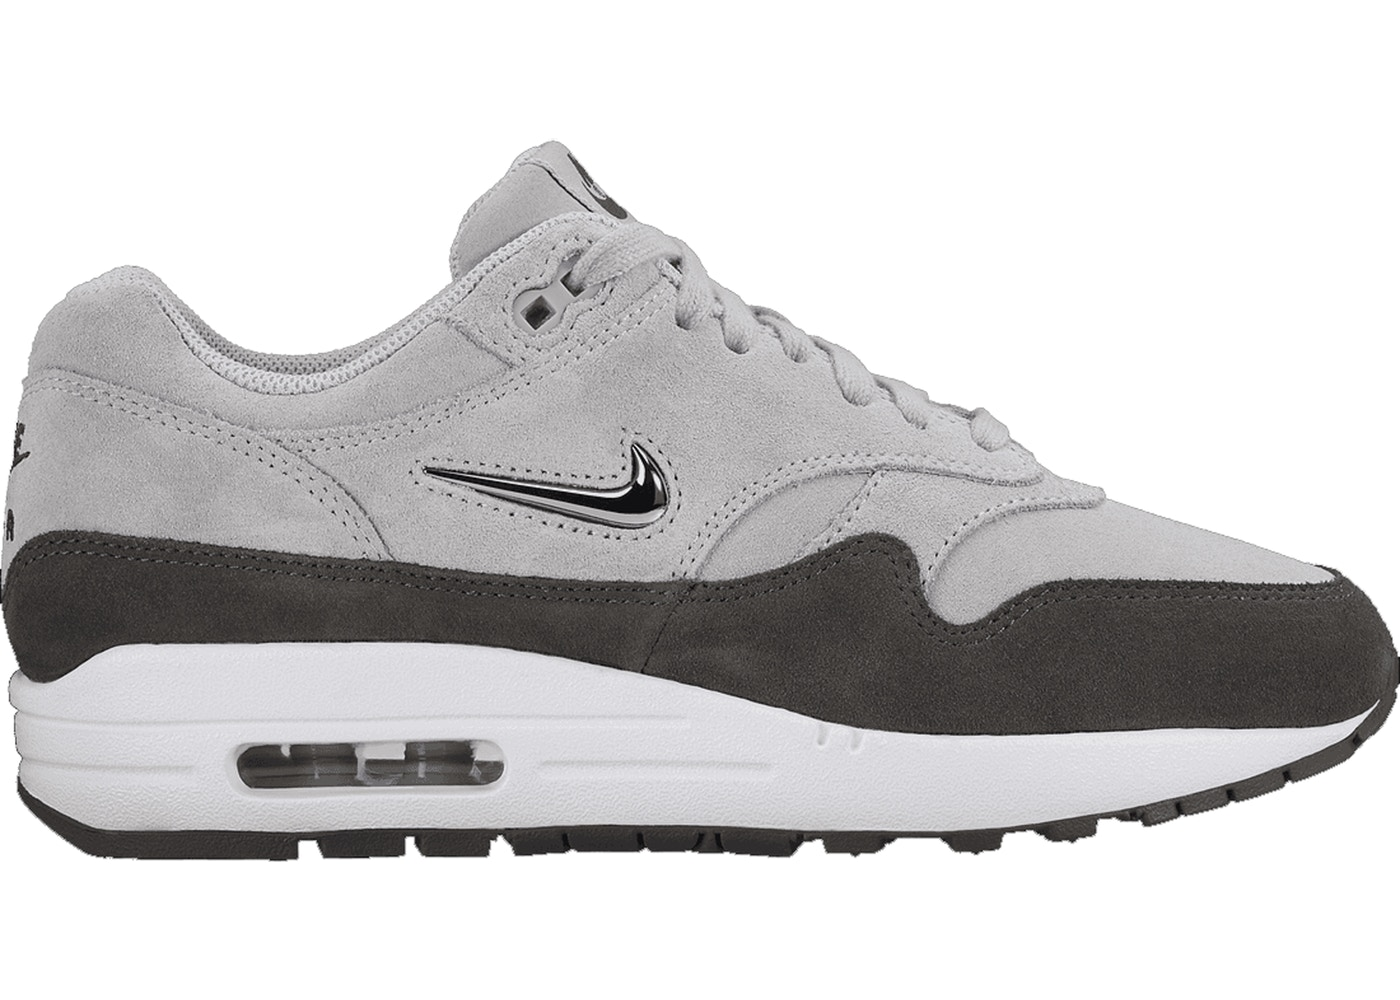 aaf2864b0a Sell. or Ask. Size: 9W. View All Bids. Air Max 1 Jewel Wolf Grey ...